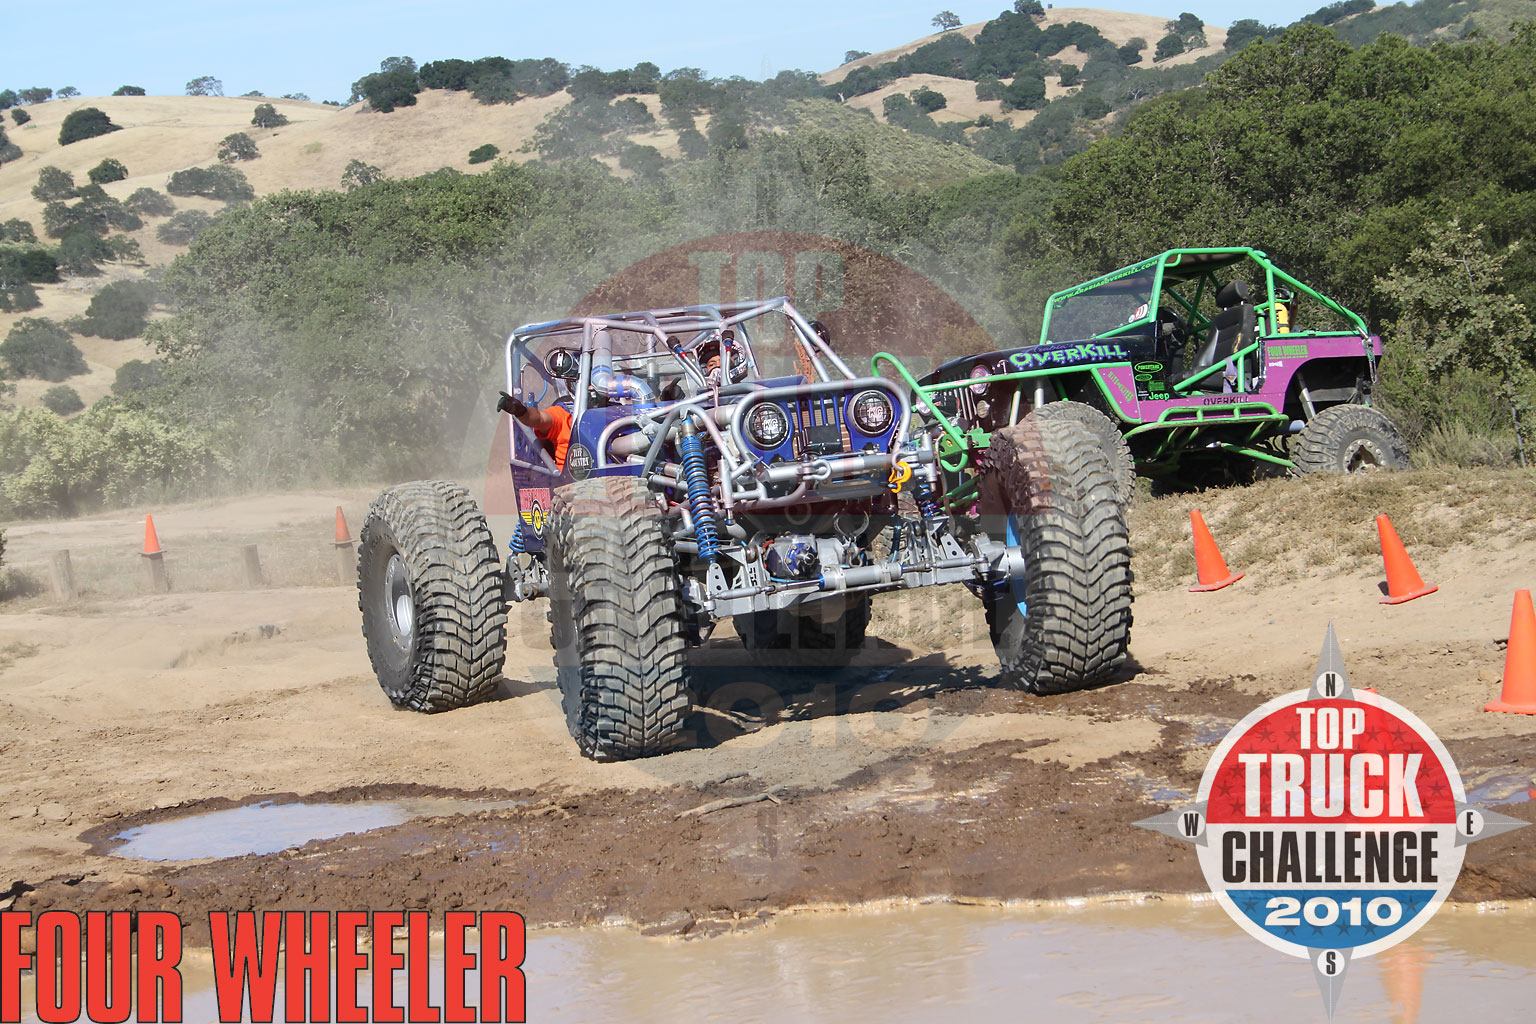 129 1006 4225+2010 top truck challenge frame twister+joe quichocho tube chassis cj7 buggy